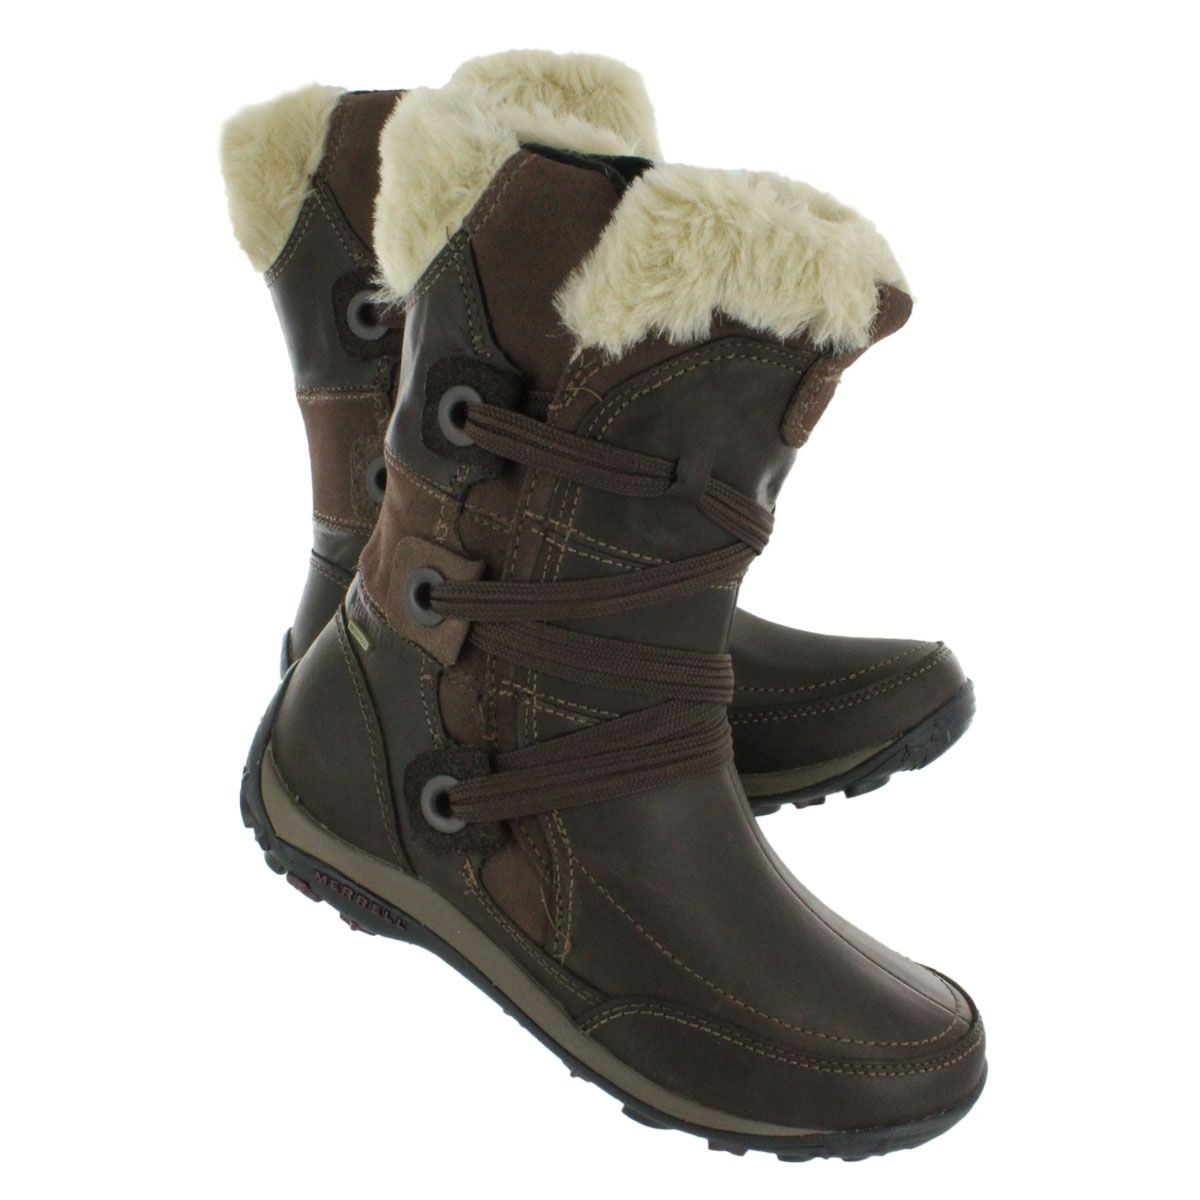 Merrell Women's NIKITA waterproof chocolate winter boots 55888 ...